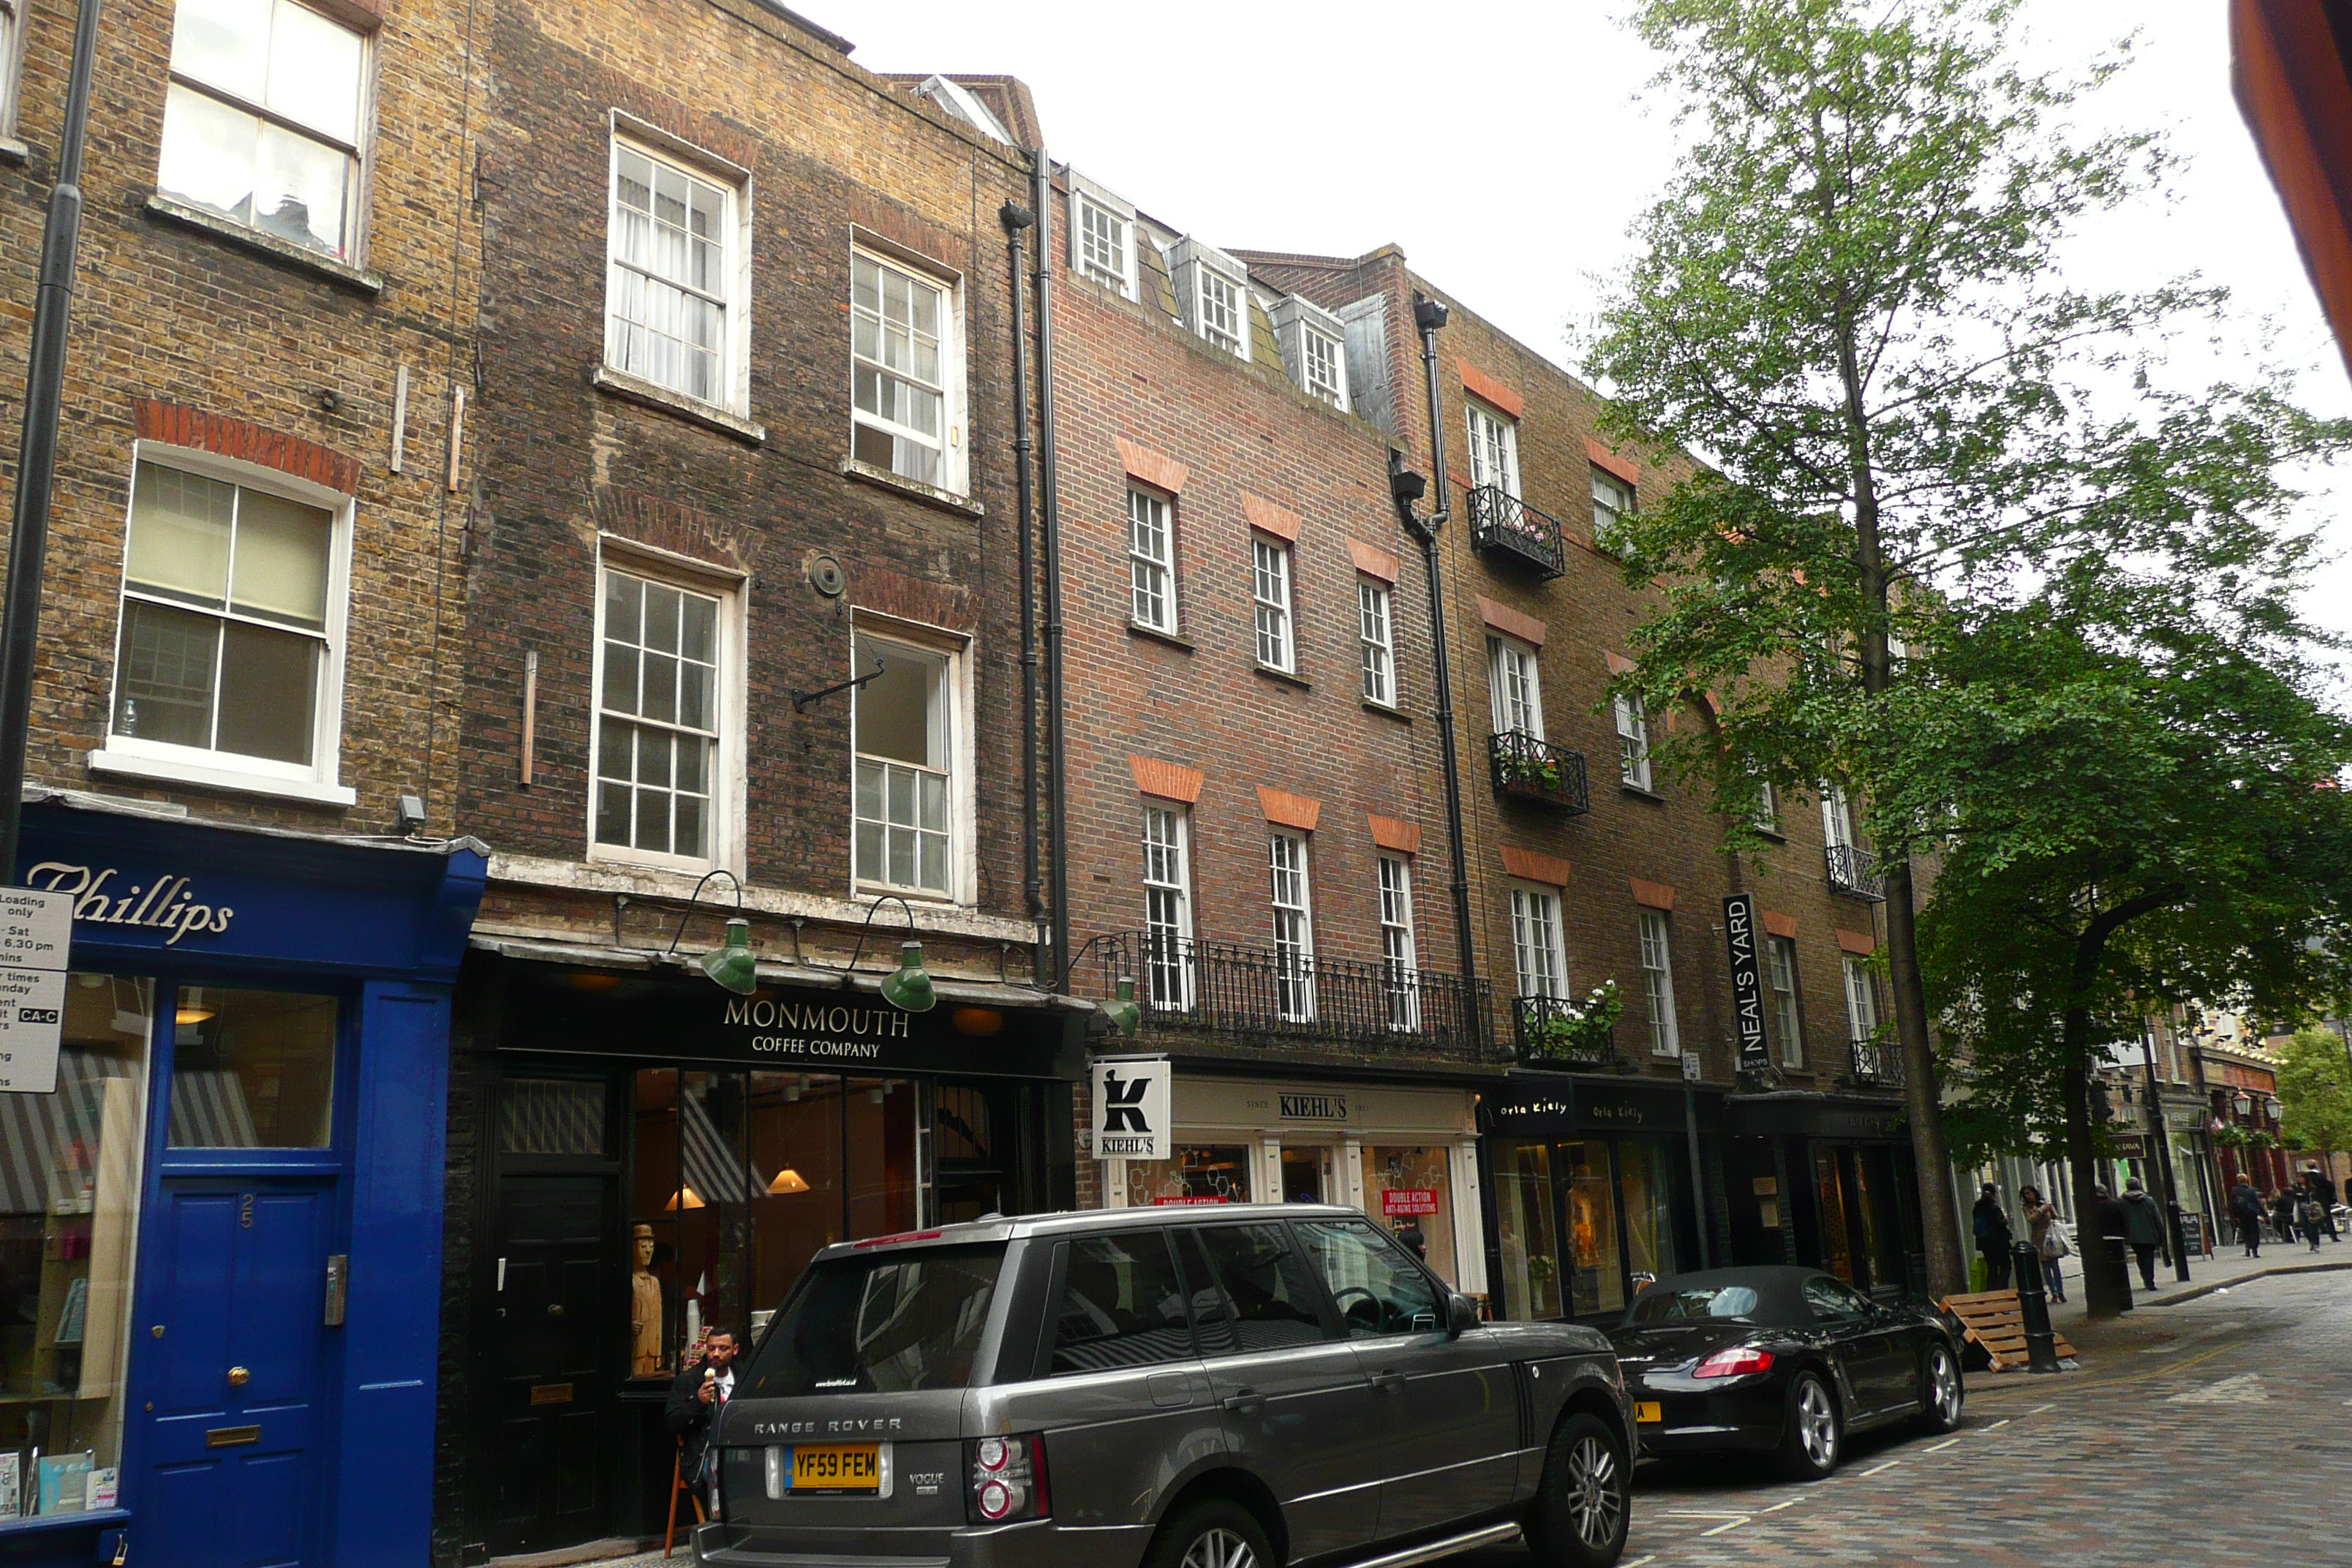 Monmouth Street, restored by Marler Estates and Shaftesbury PLC.